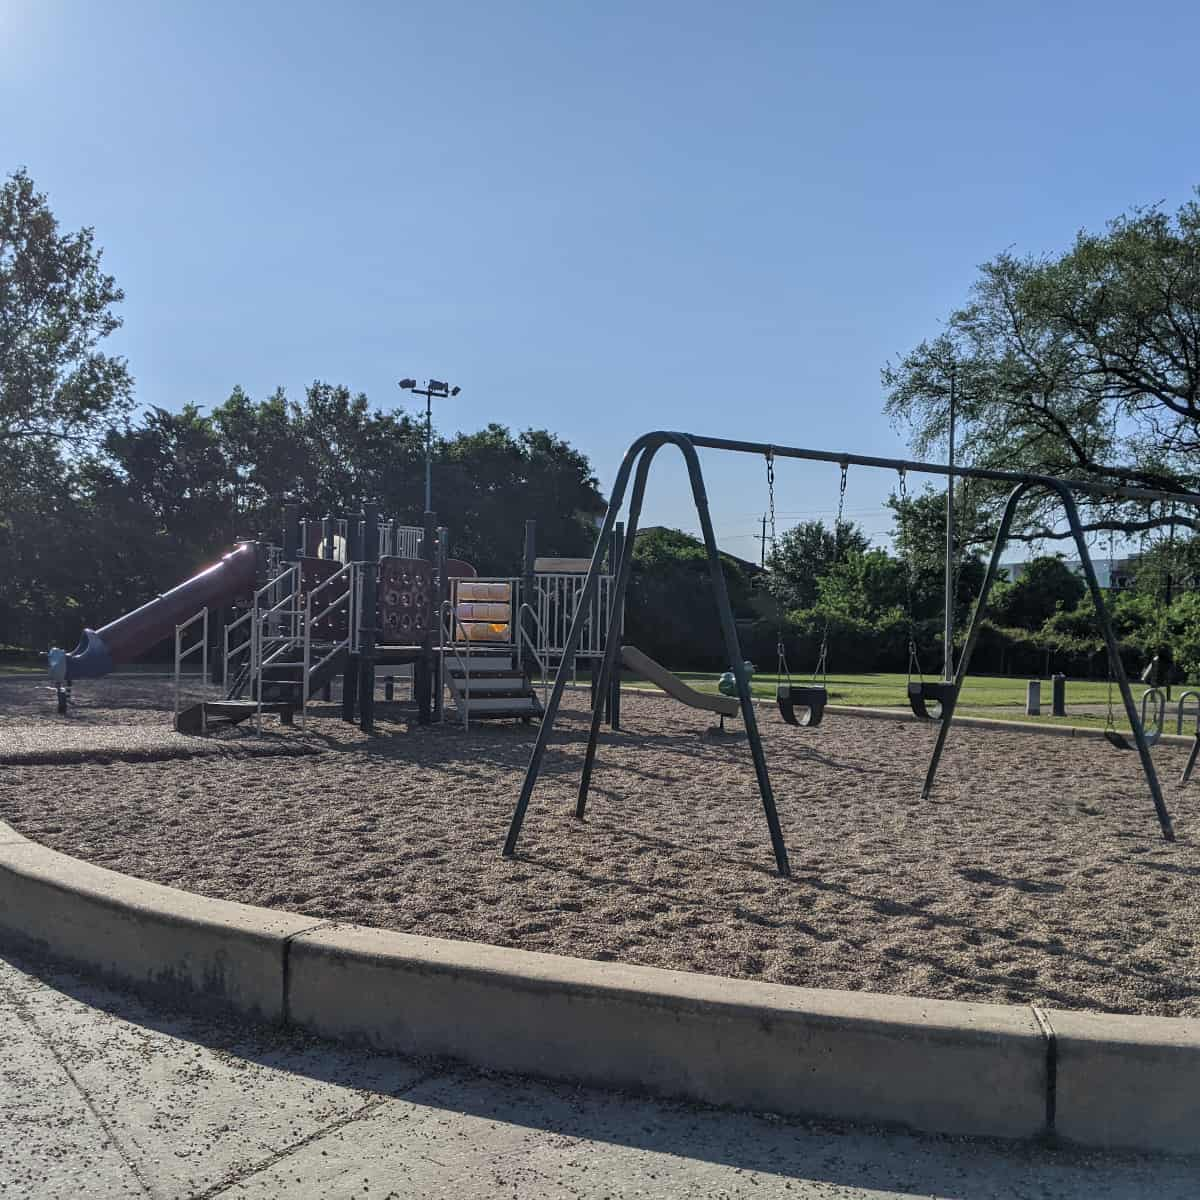 Lawrence Park Swings and Playground